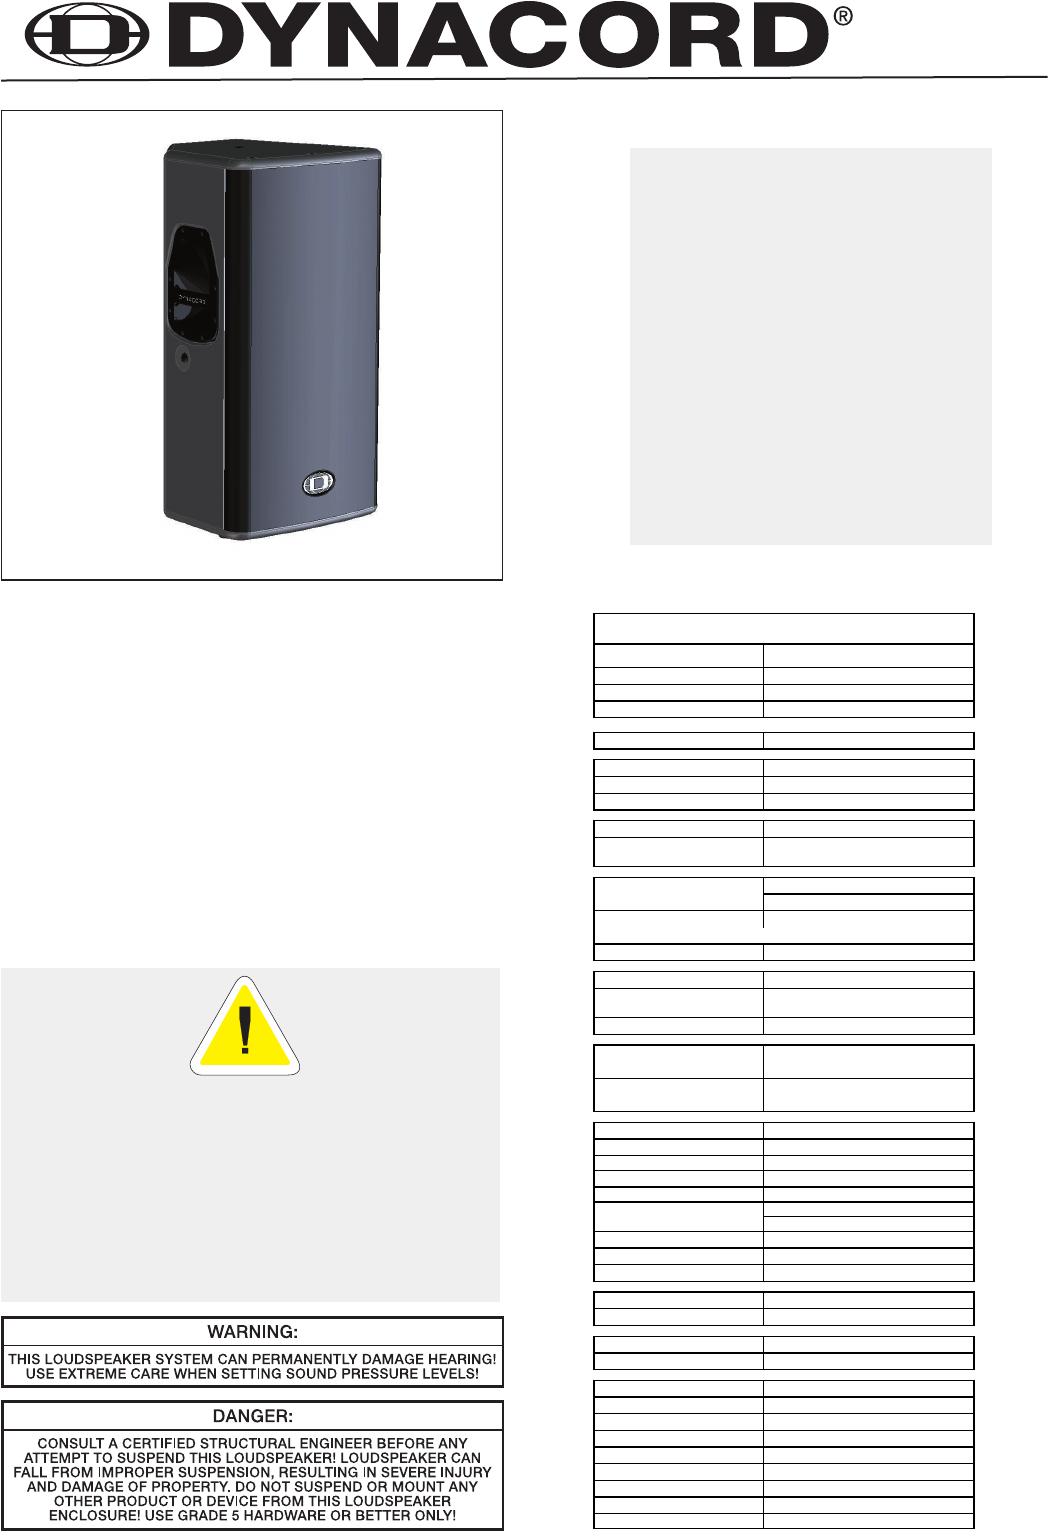 Dynacord Speaker System Vl 152 User Guide Manualsonline Com border=